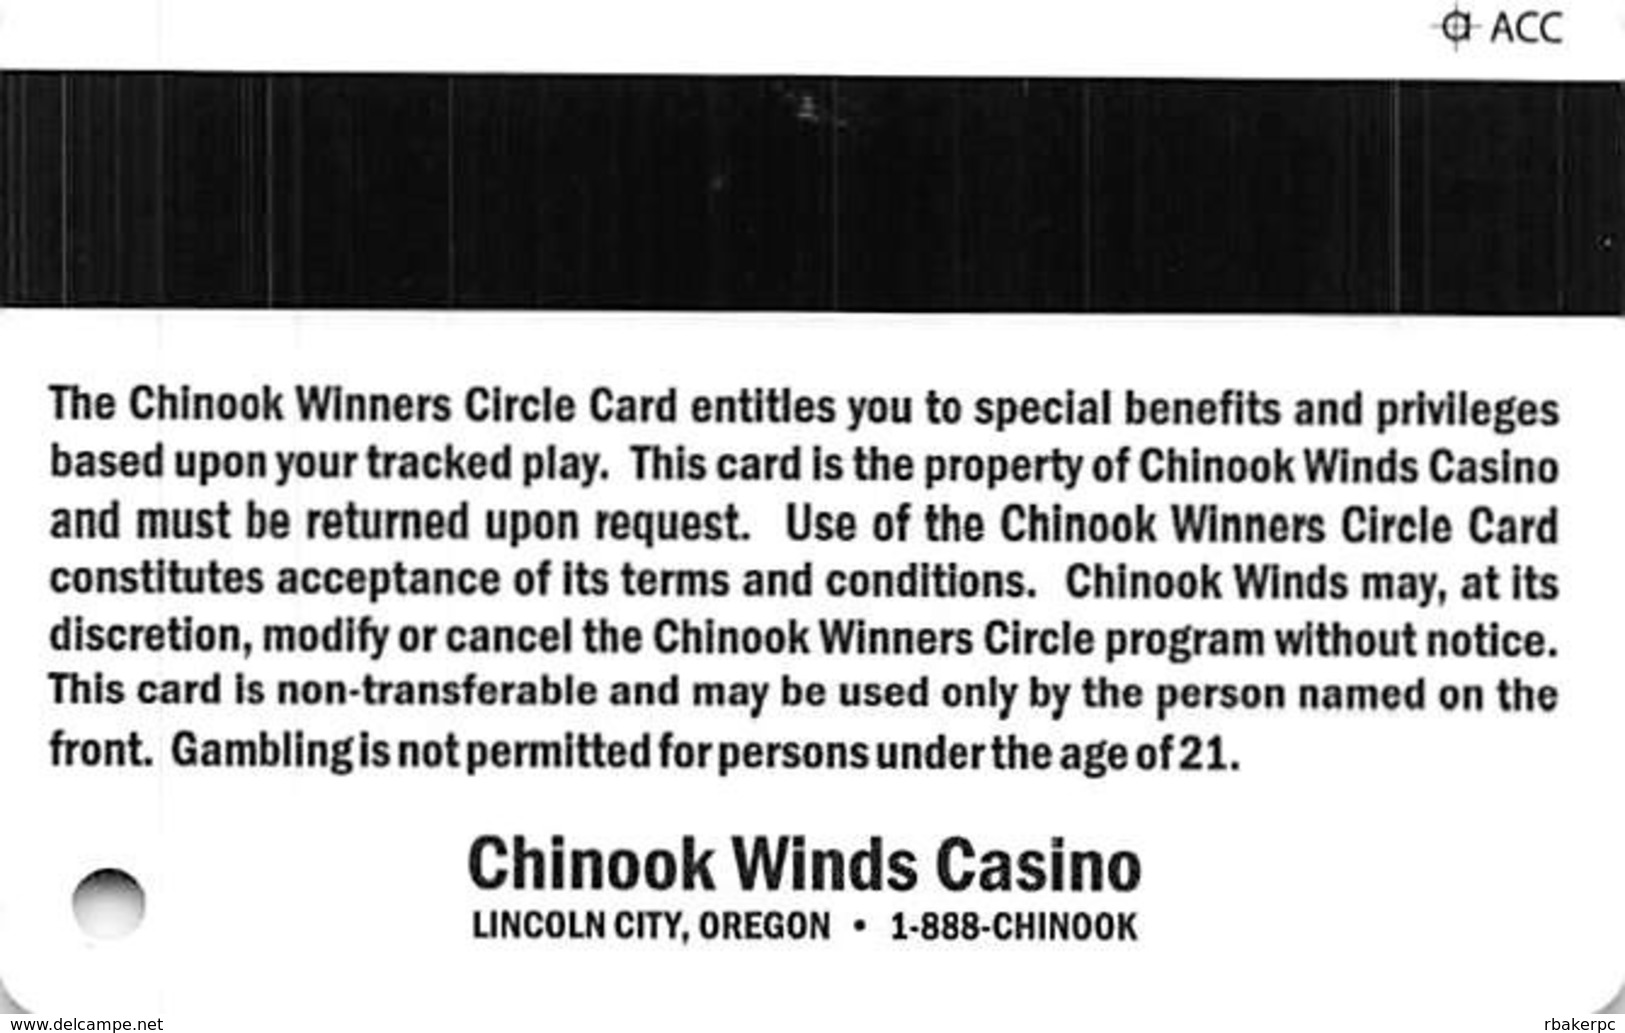 Chinook Winds Casino Lincoln City, OR - Slot Card With ACC Over Mag Stripe - Cartes De Casino